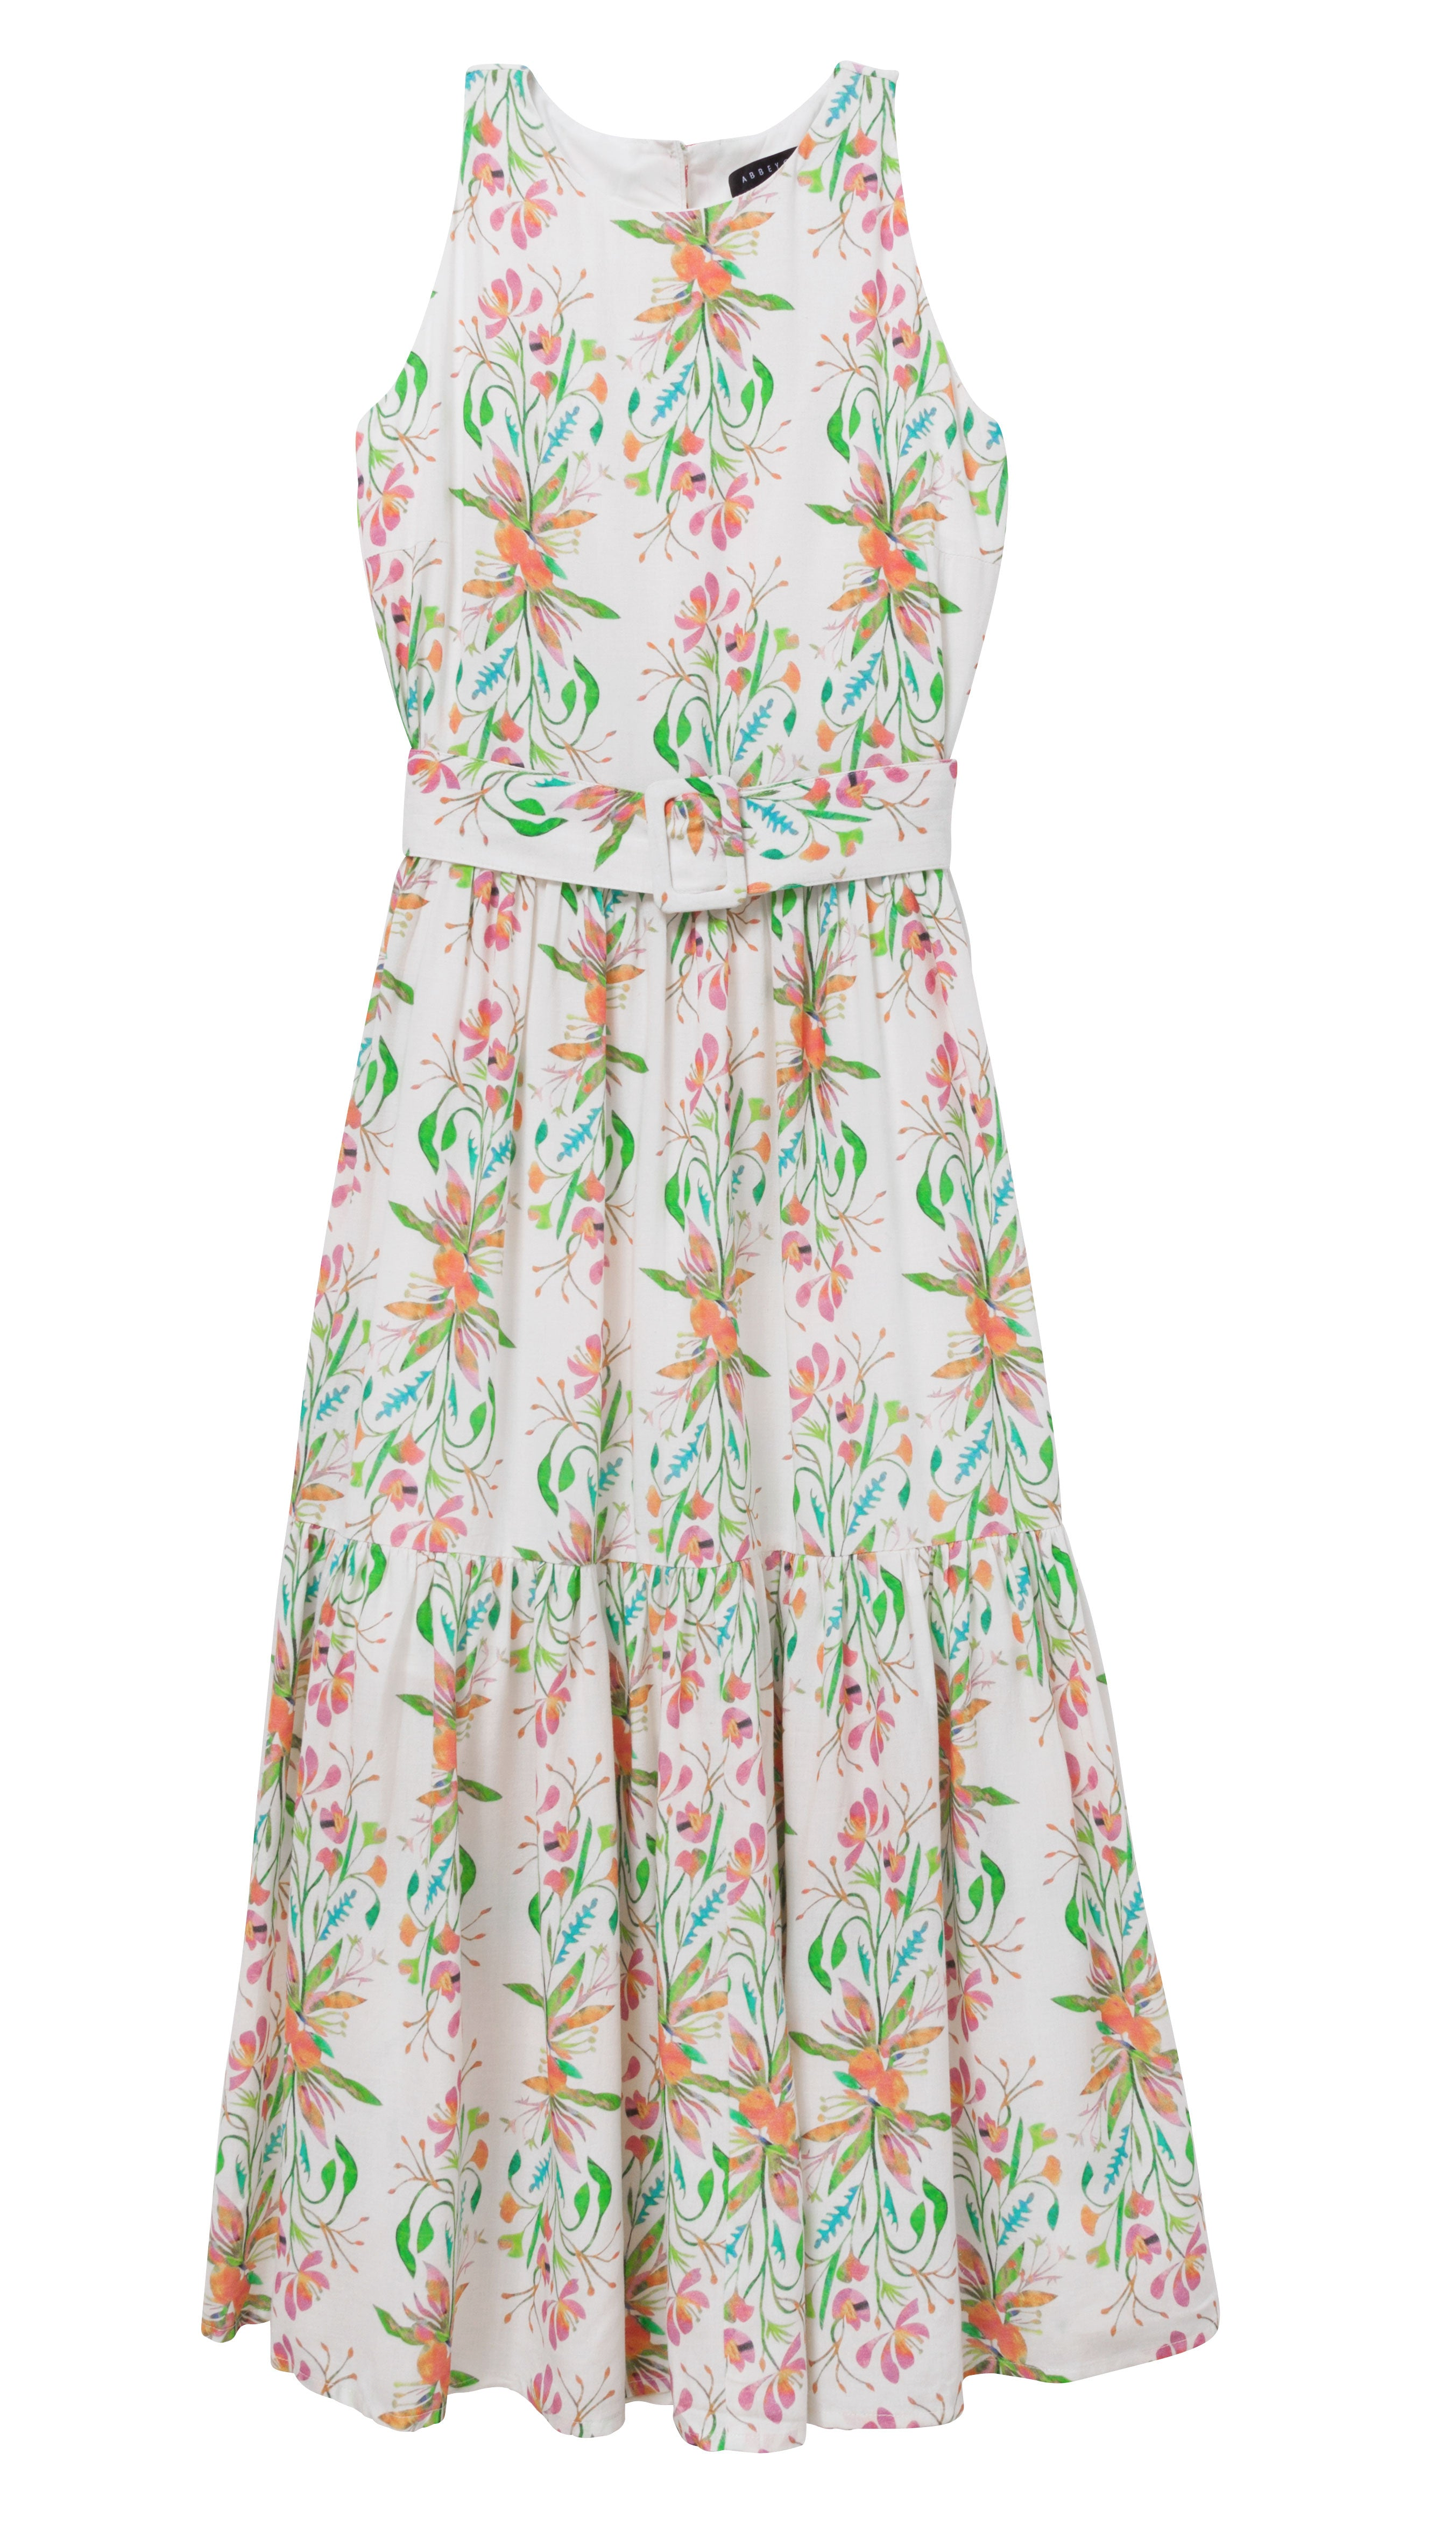 MAYA TIERED DRESS TROPICAL FLORAL